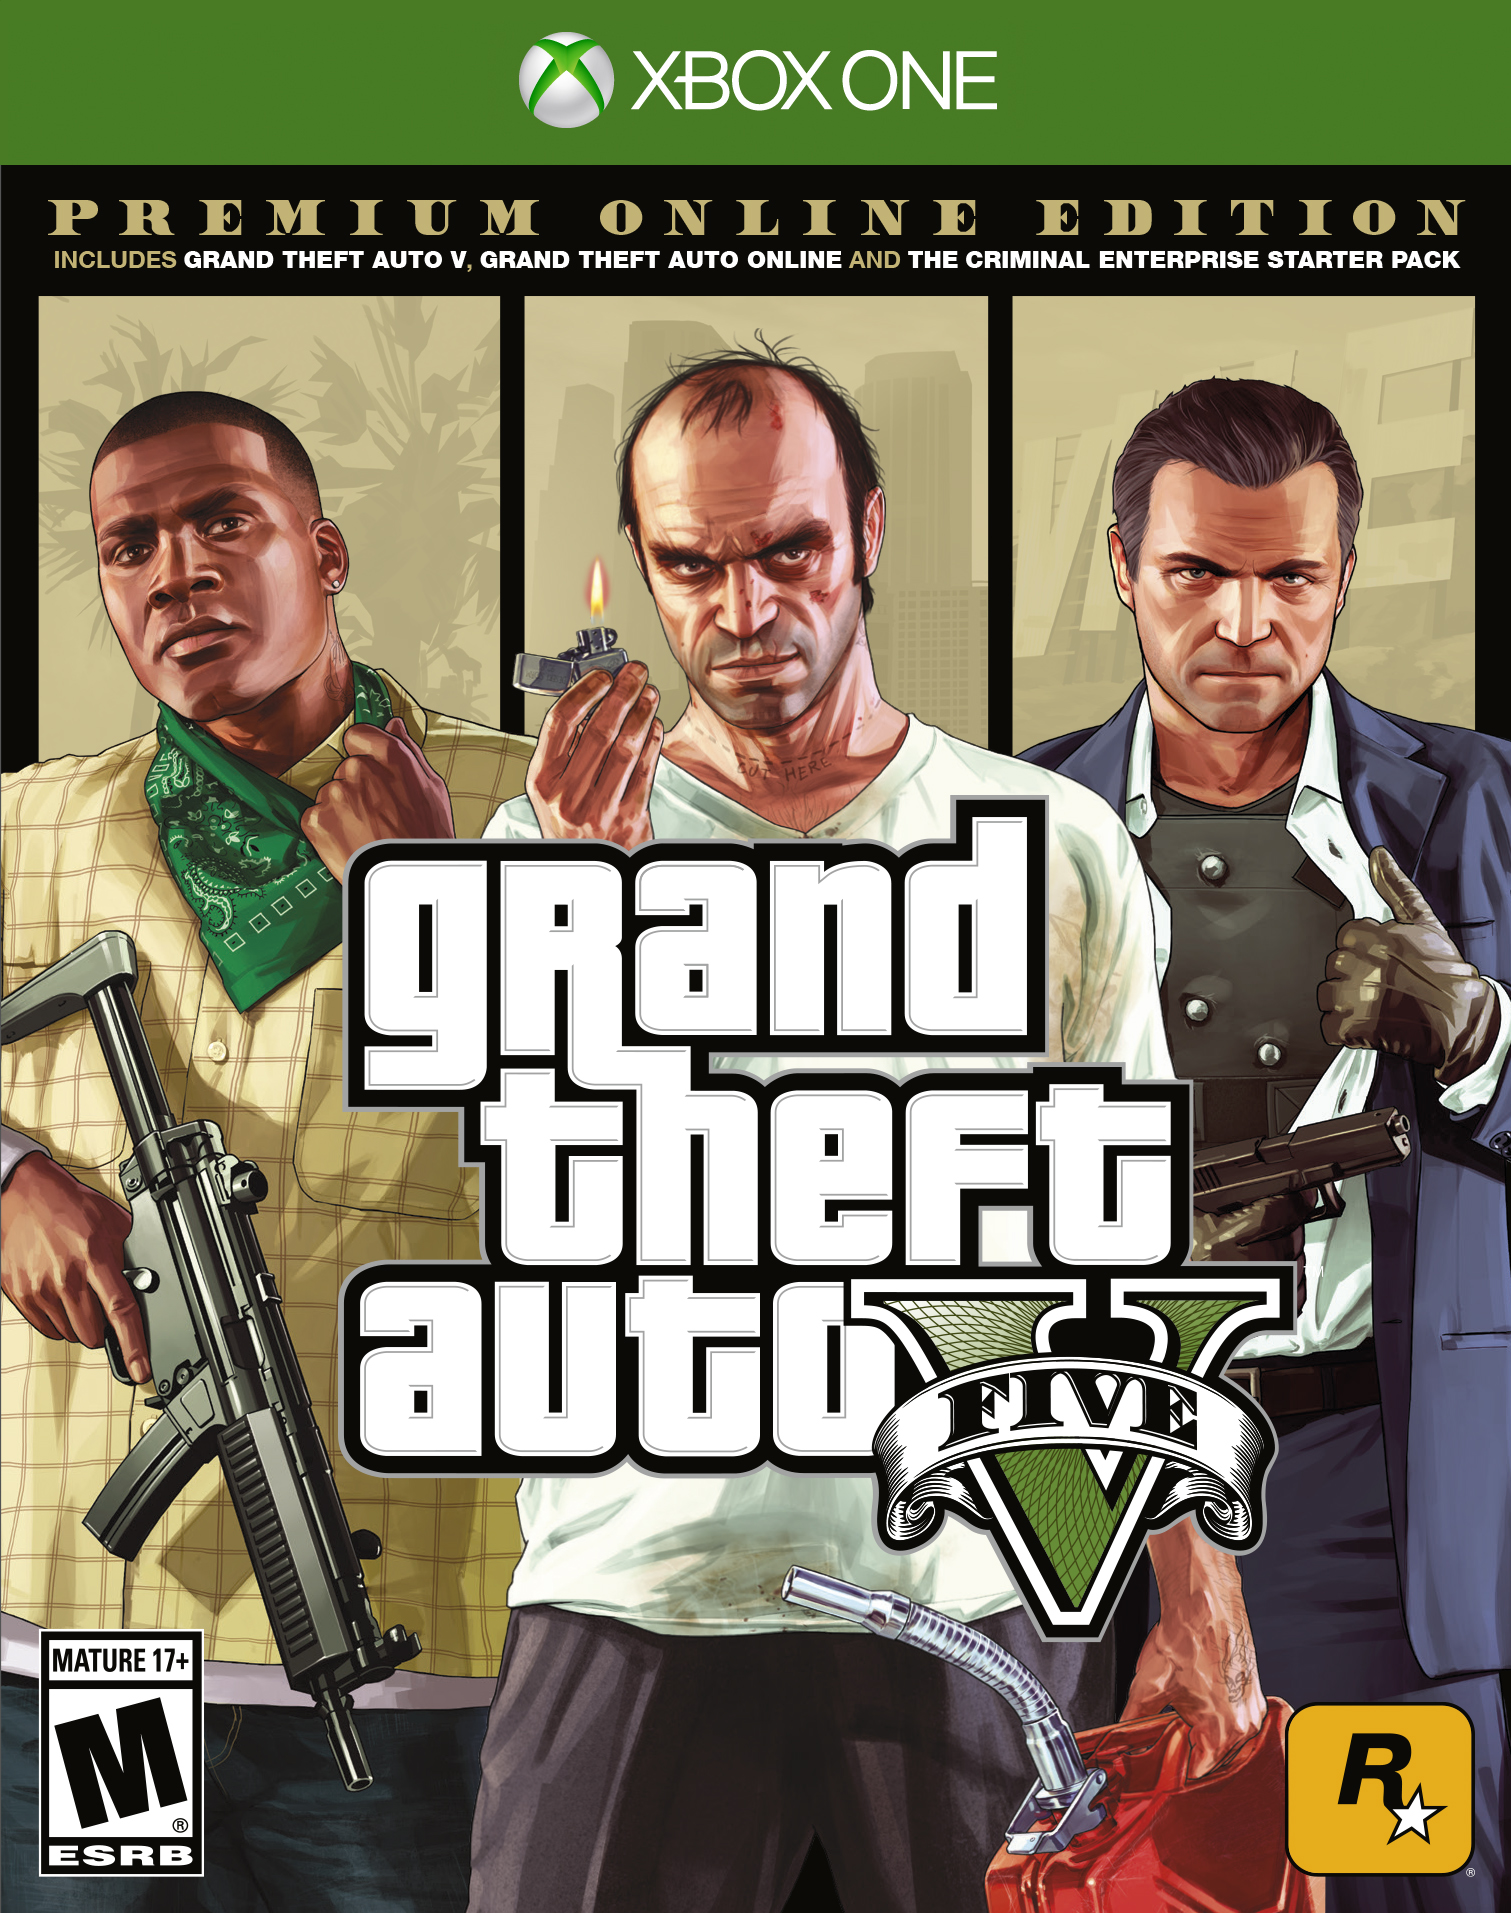 Grand Theft Auto V: Premium Online Edition, Rockstar Games, Xbox One, 710425590337